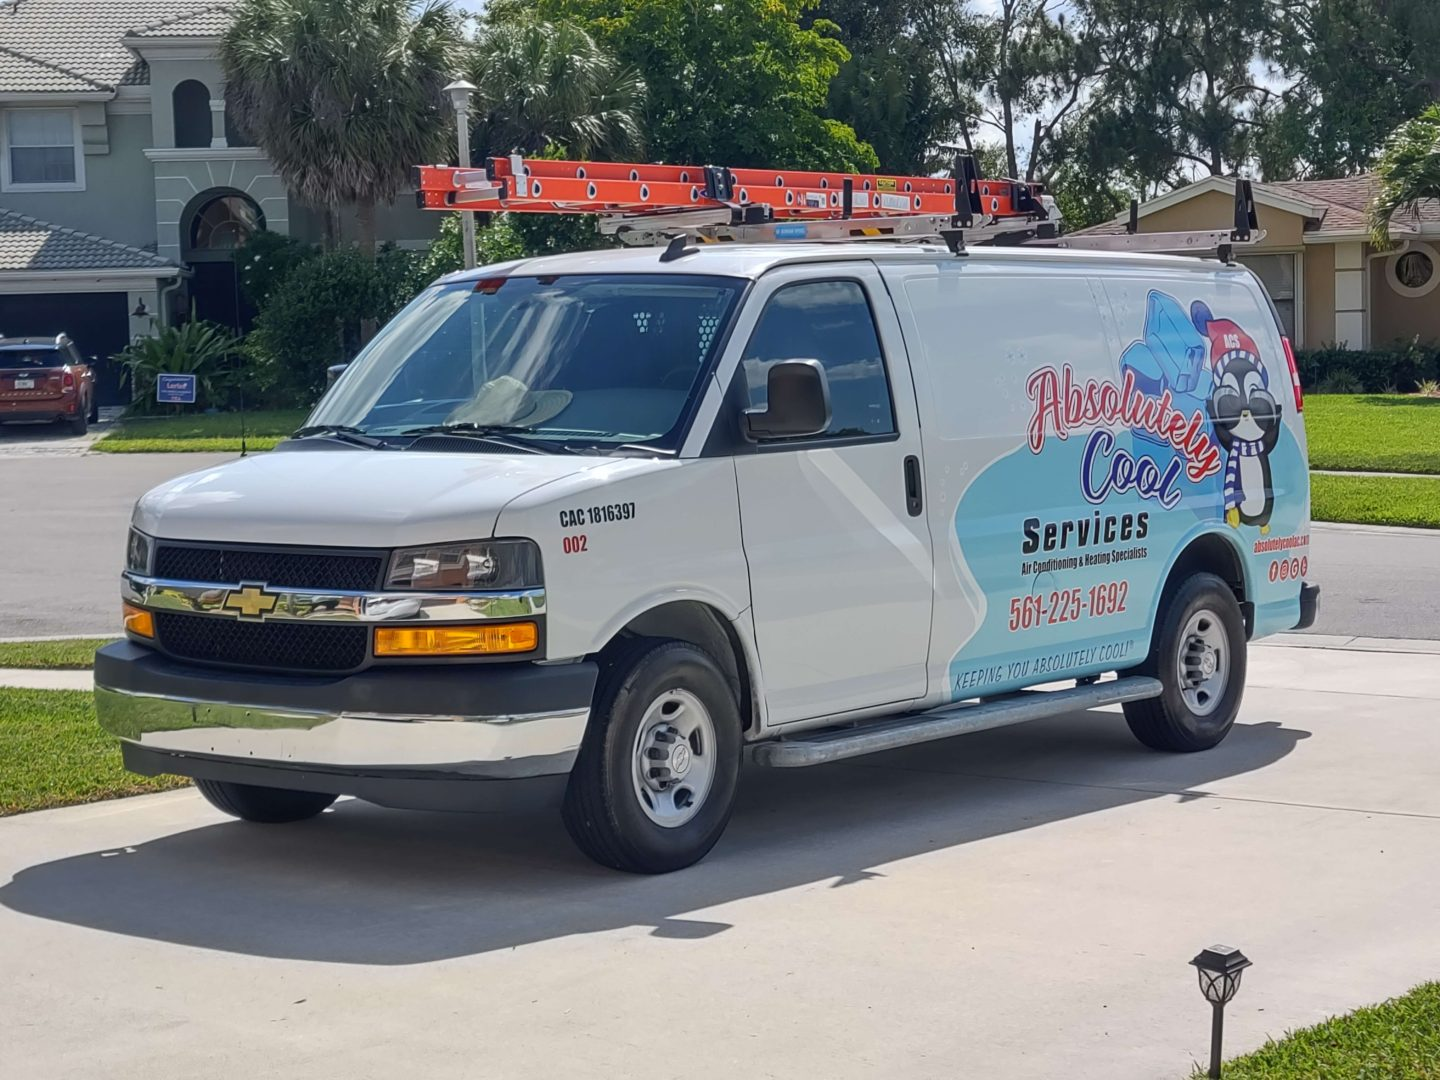 absolutely_cool_van - Heating and Air Conditioning Services for West Palm Beach and Broward Counties